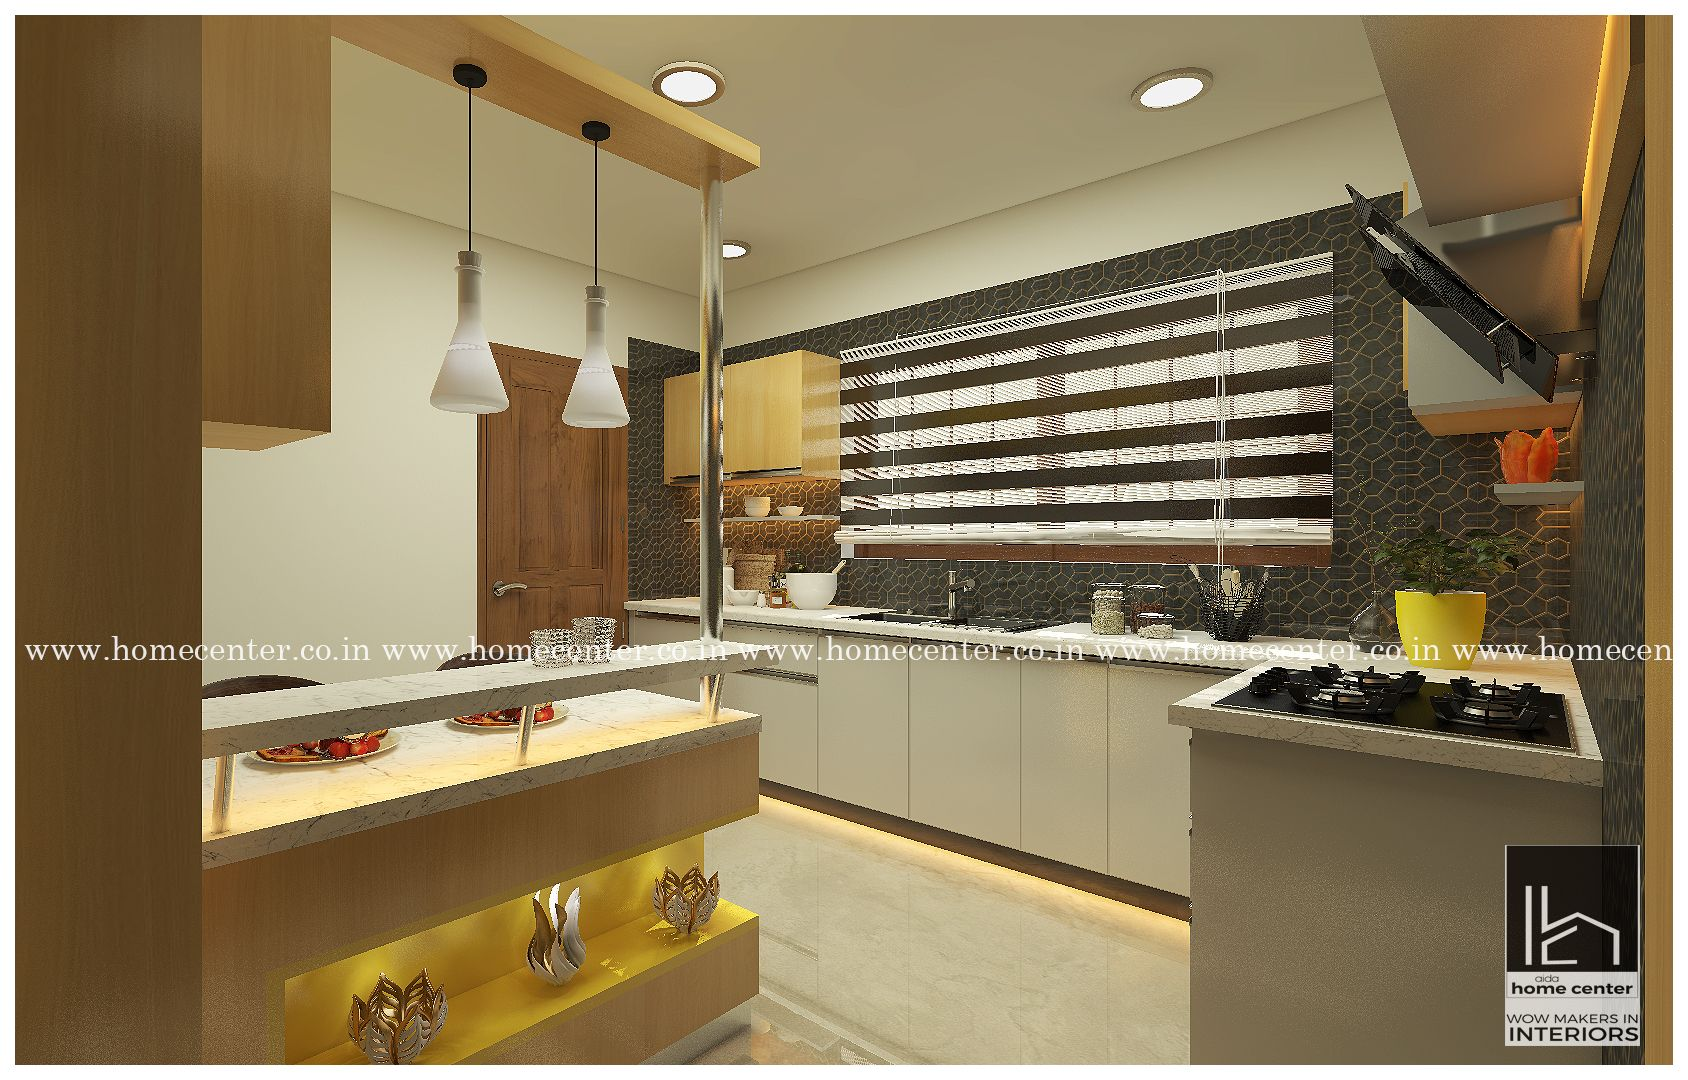 Home center interiors is the best interior design company in kerala designers also rh pinterest